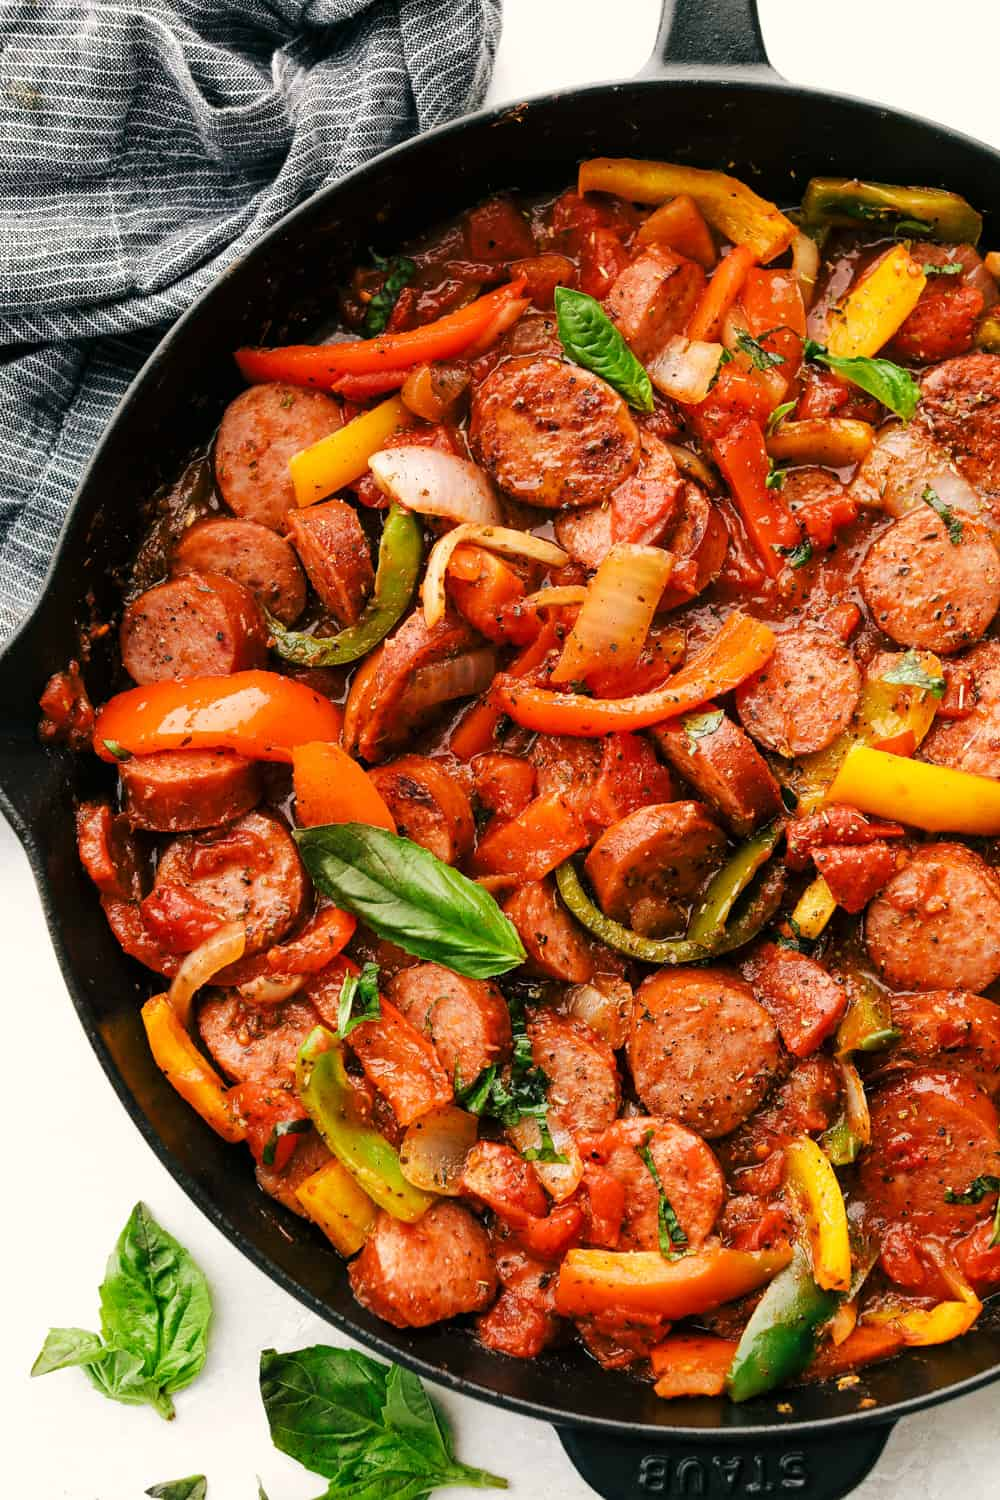 Skillet Italian sausage with peppers in a cast iron pan.